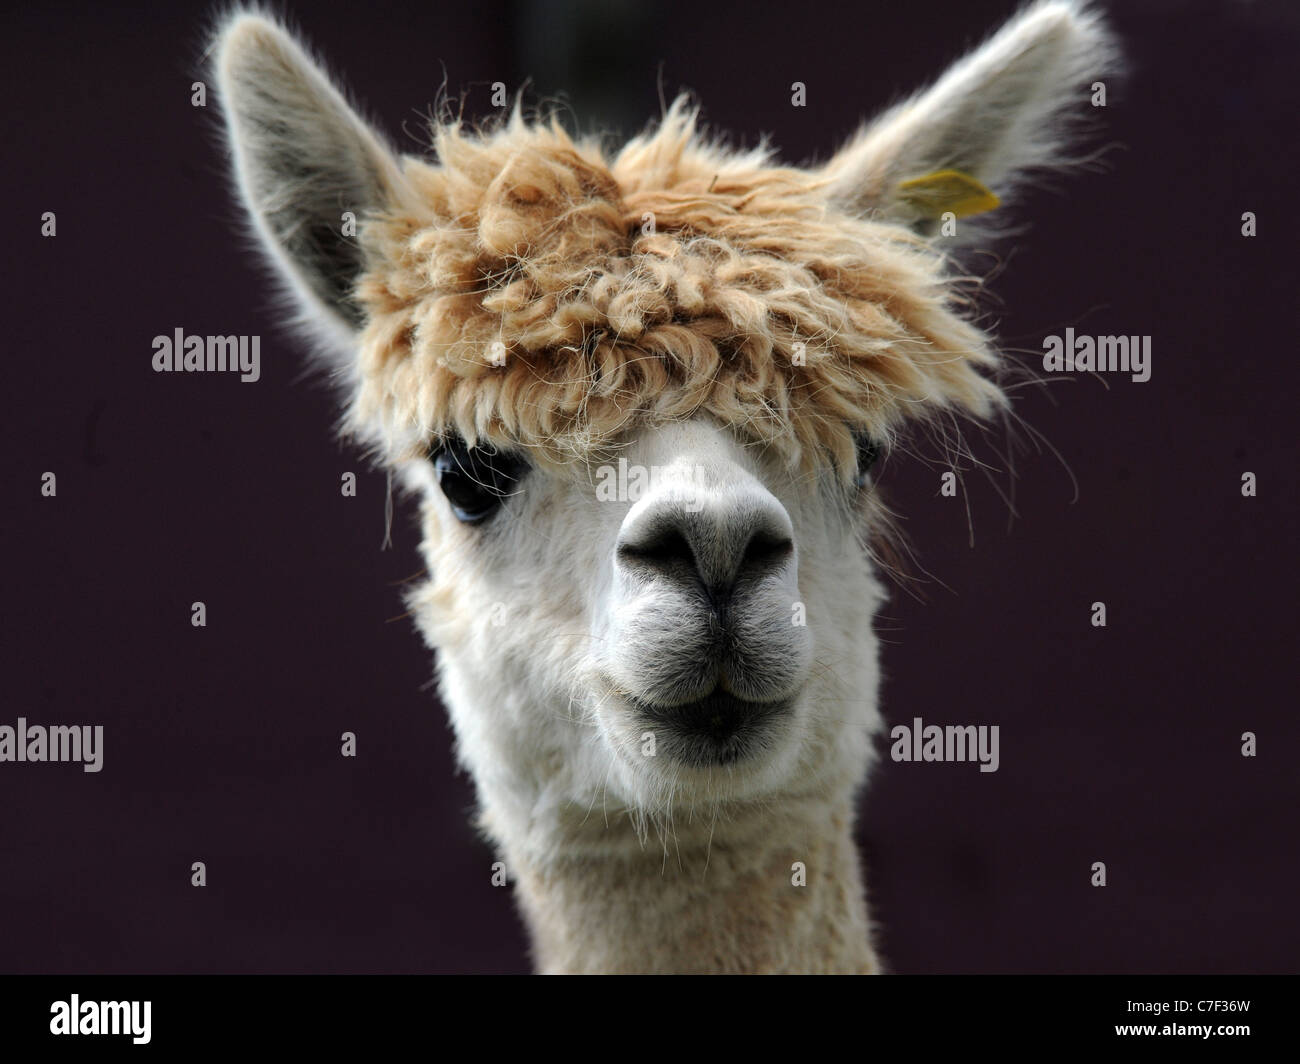 a-portrait-of-an-alpaca-with-a-big-fring